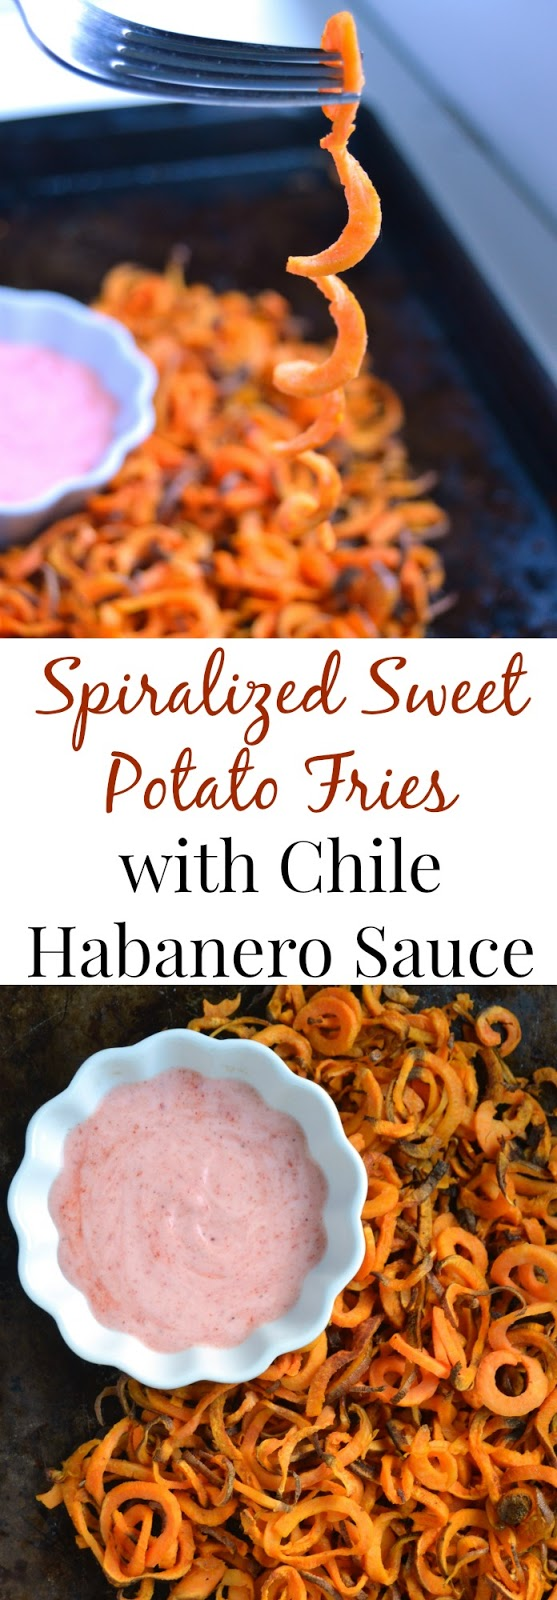 Spiralized Sweet Potato Fries with Chile Habanero Sauce- thin, crispy and make the perfect appetizer. The spicy and creamy sauce adds flavor and spice to the dish. www.nutritionistreviews.com